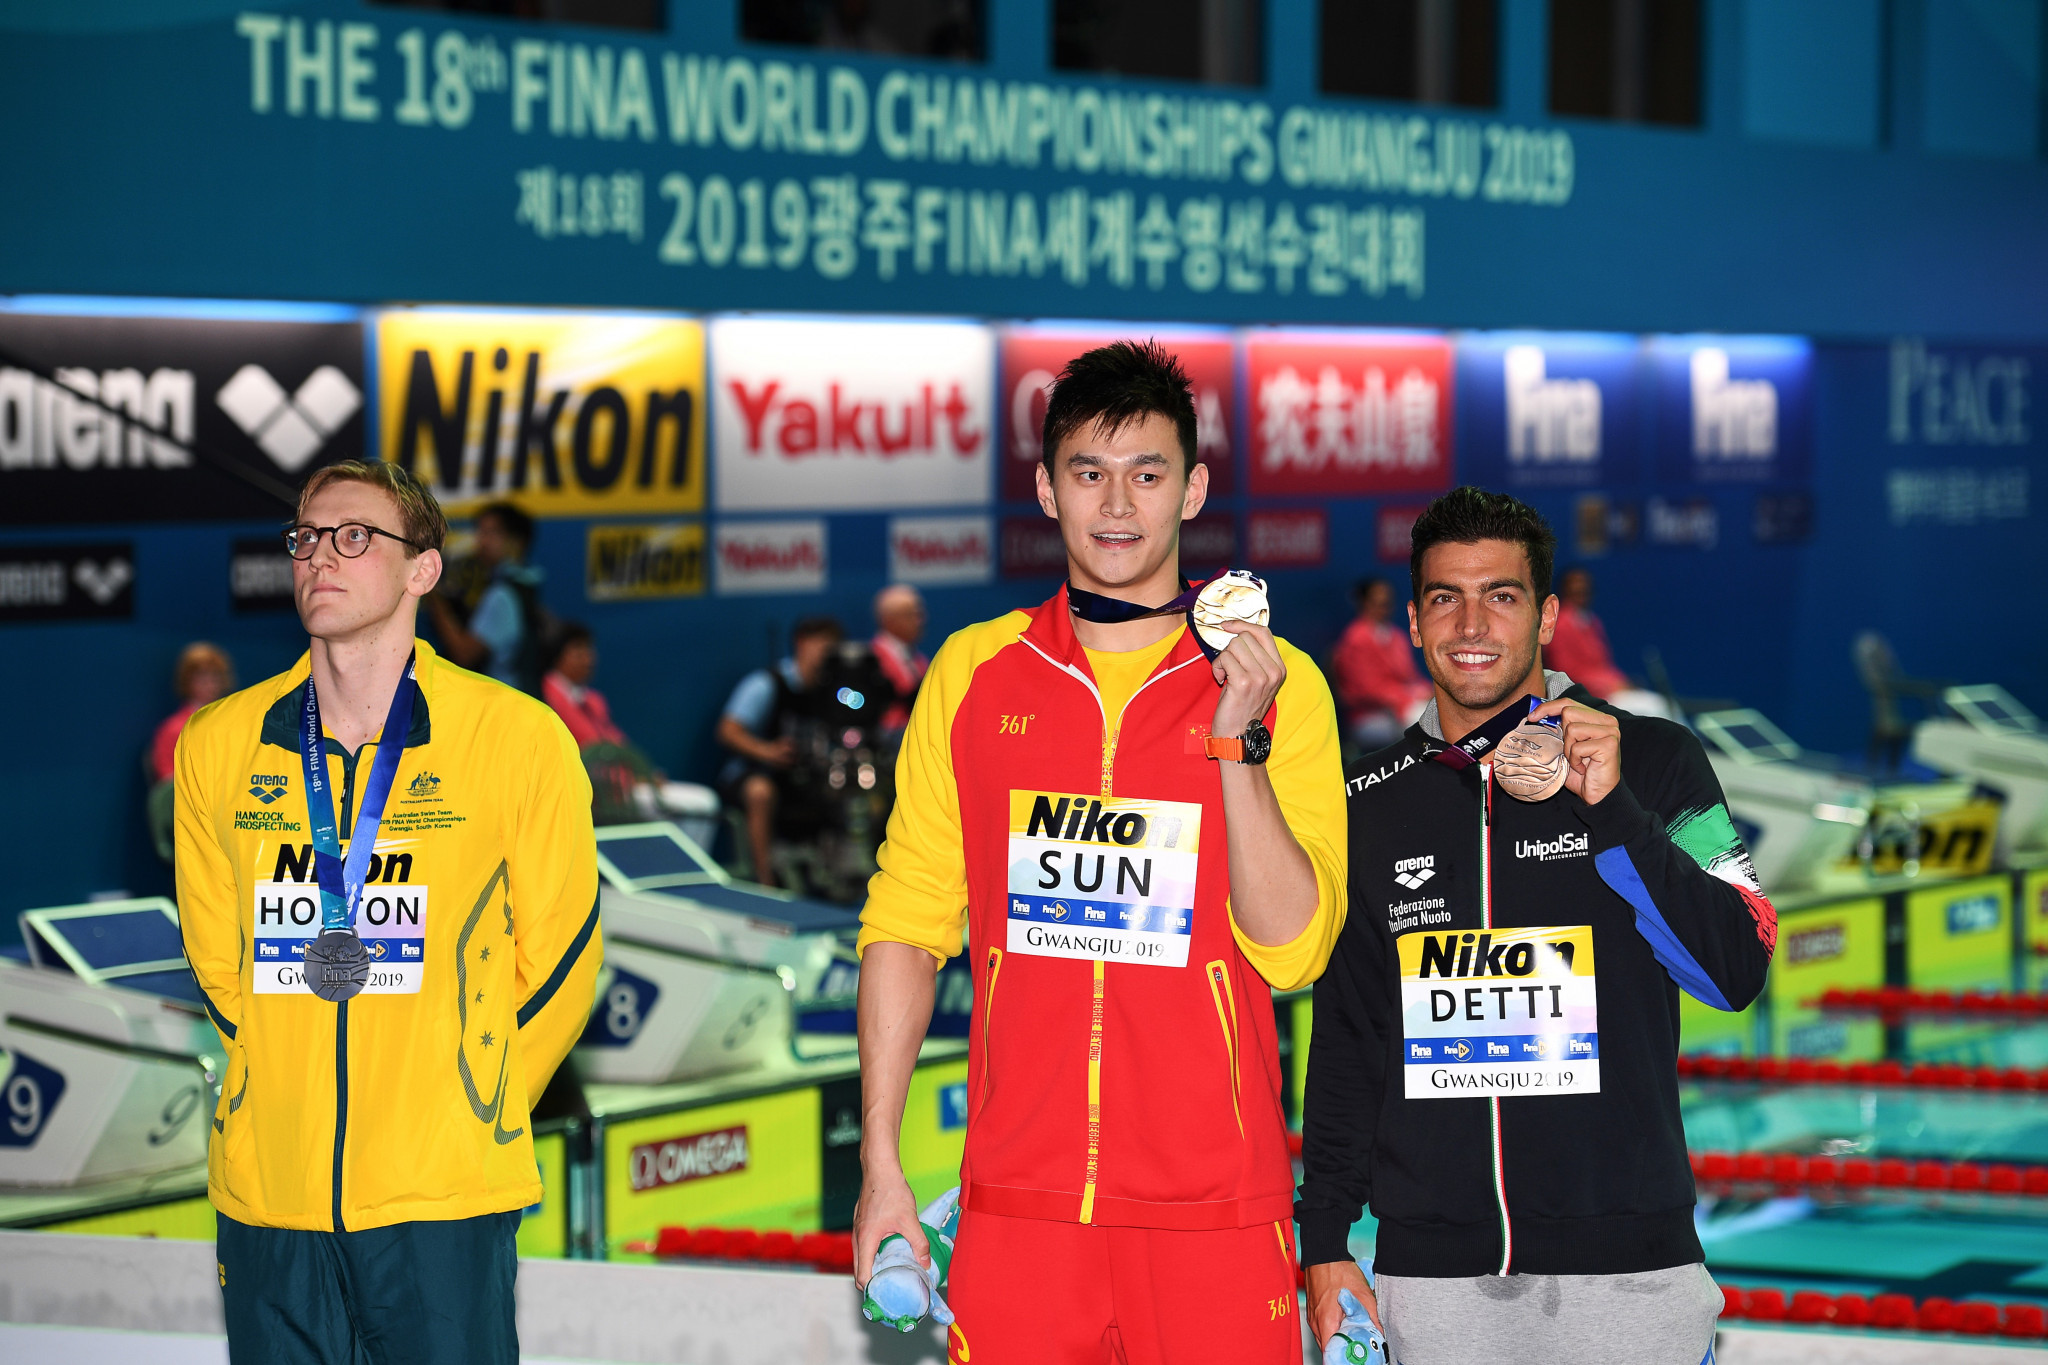 FINA send warning letter to Horton after Australian's podium protest in Gwangju